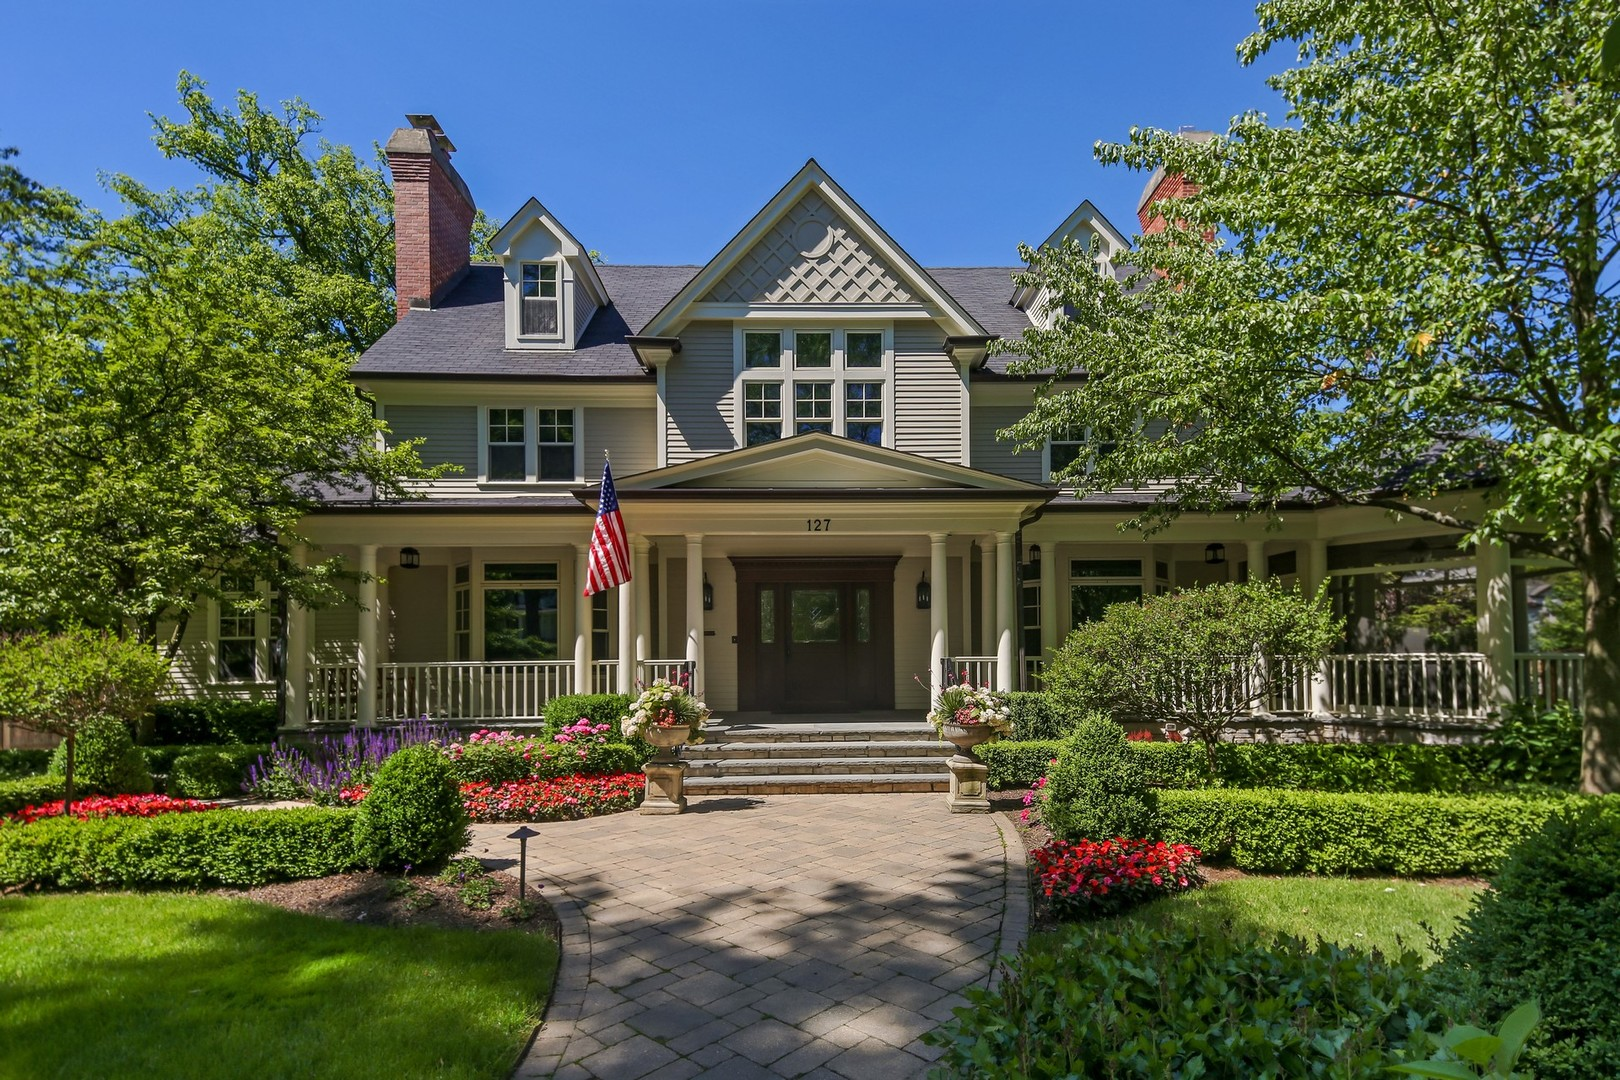 127 East 5th Street, Hinsdale, IL 60521